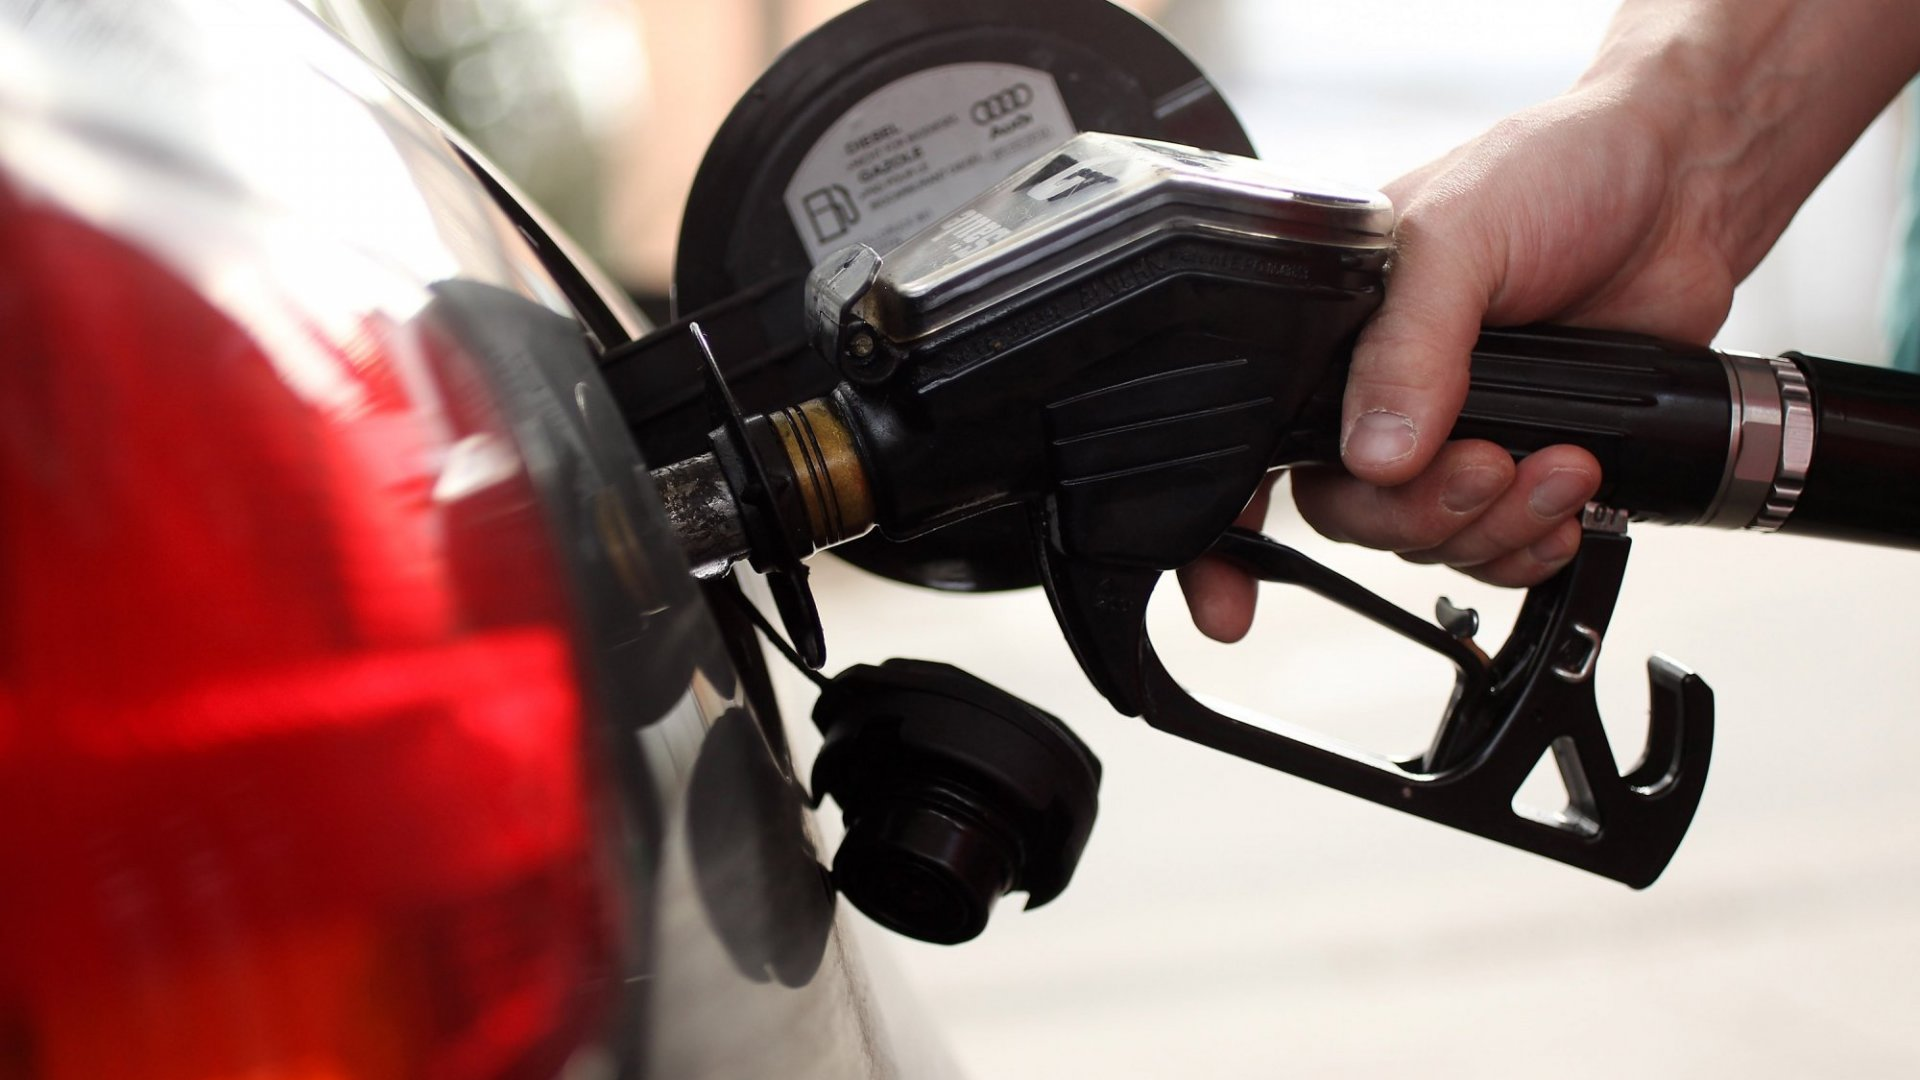 The President may have to use a gas tax to fund his infrastructure plan. (Getty Images)